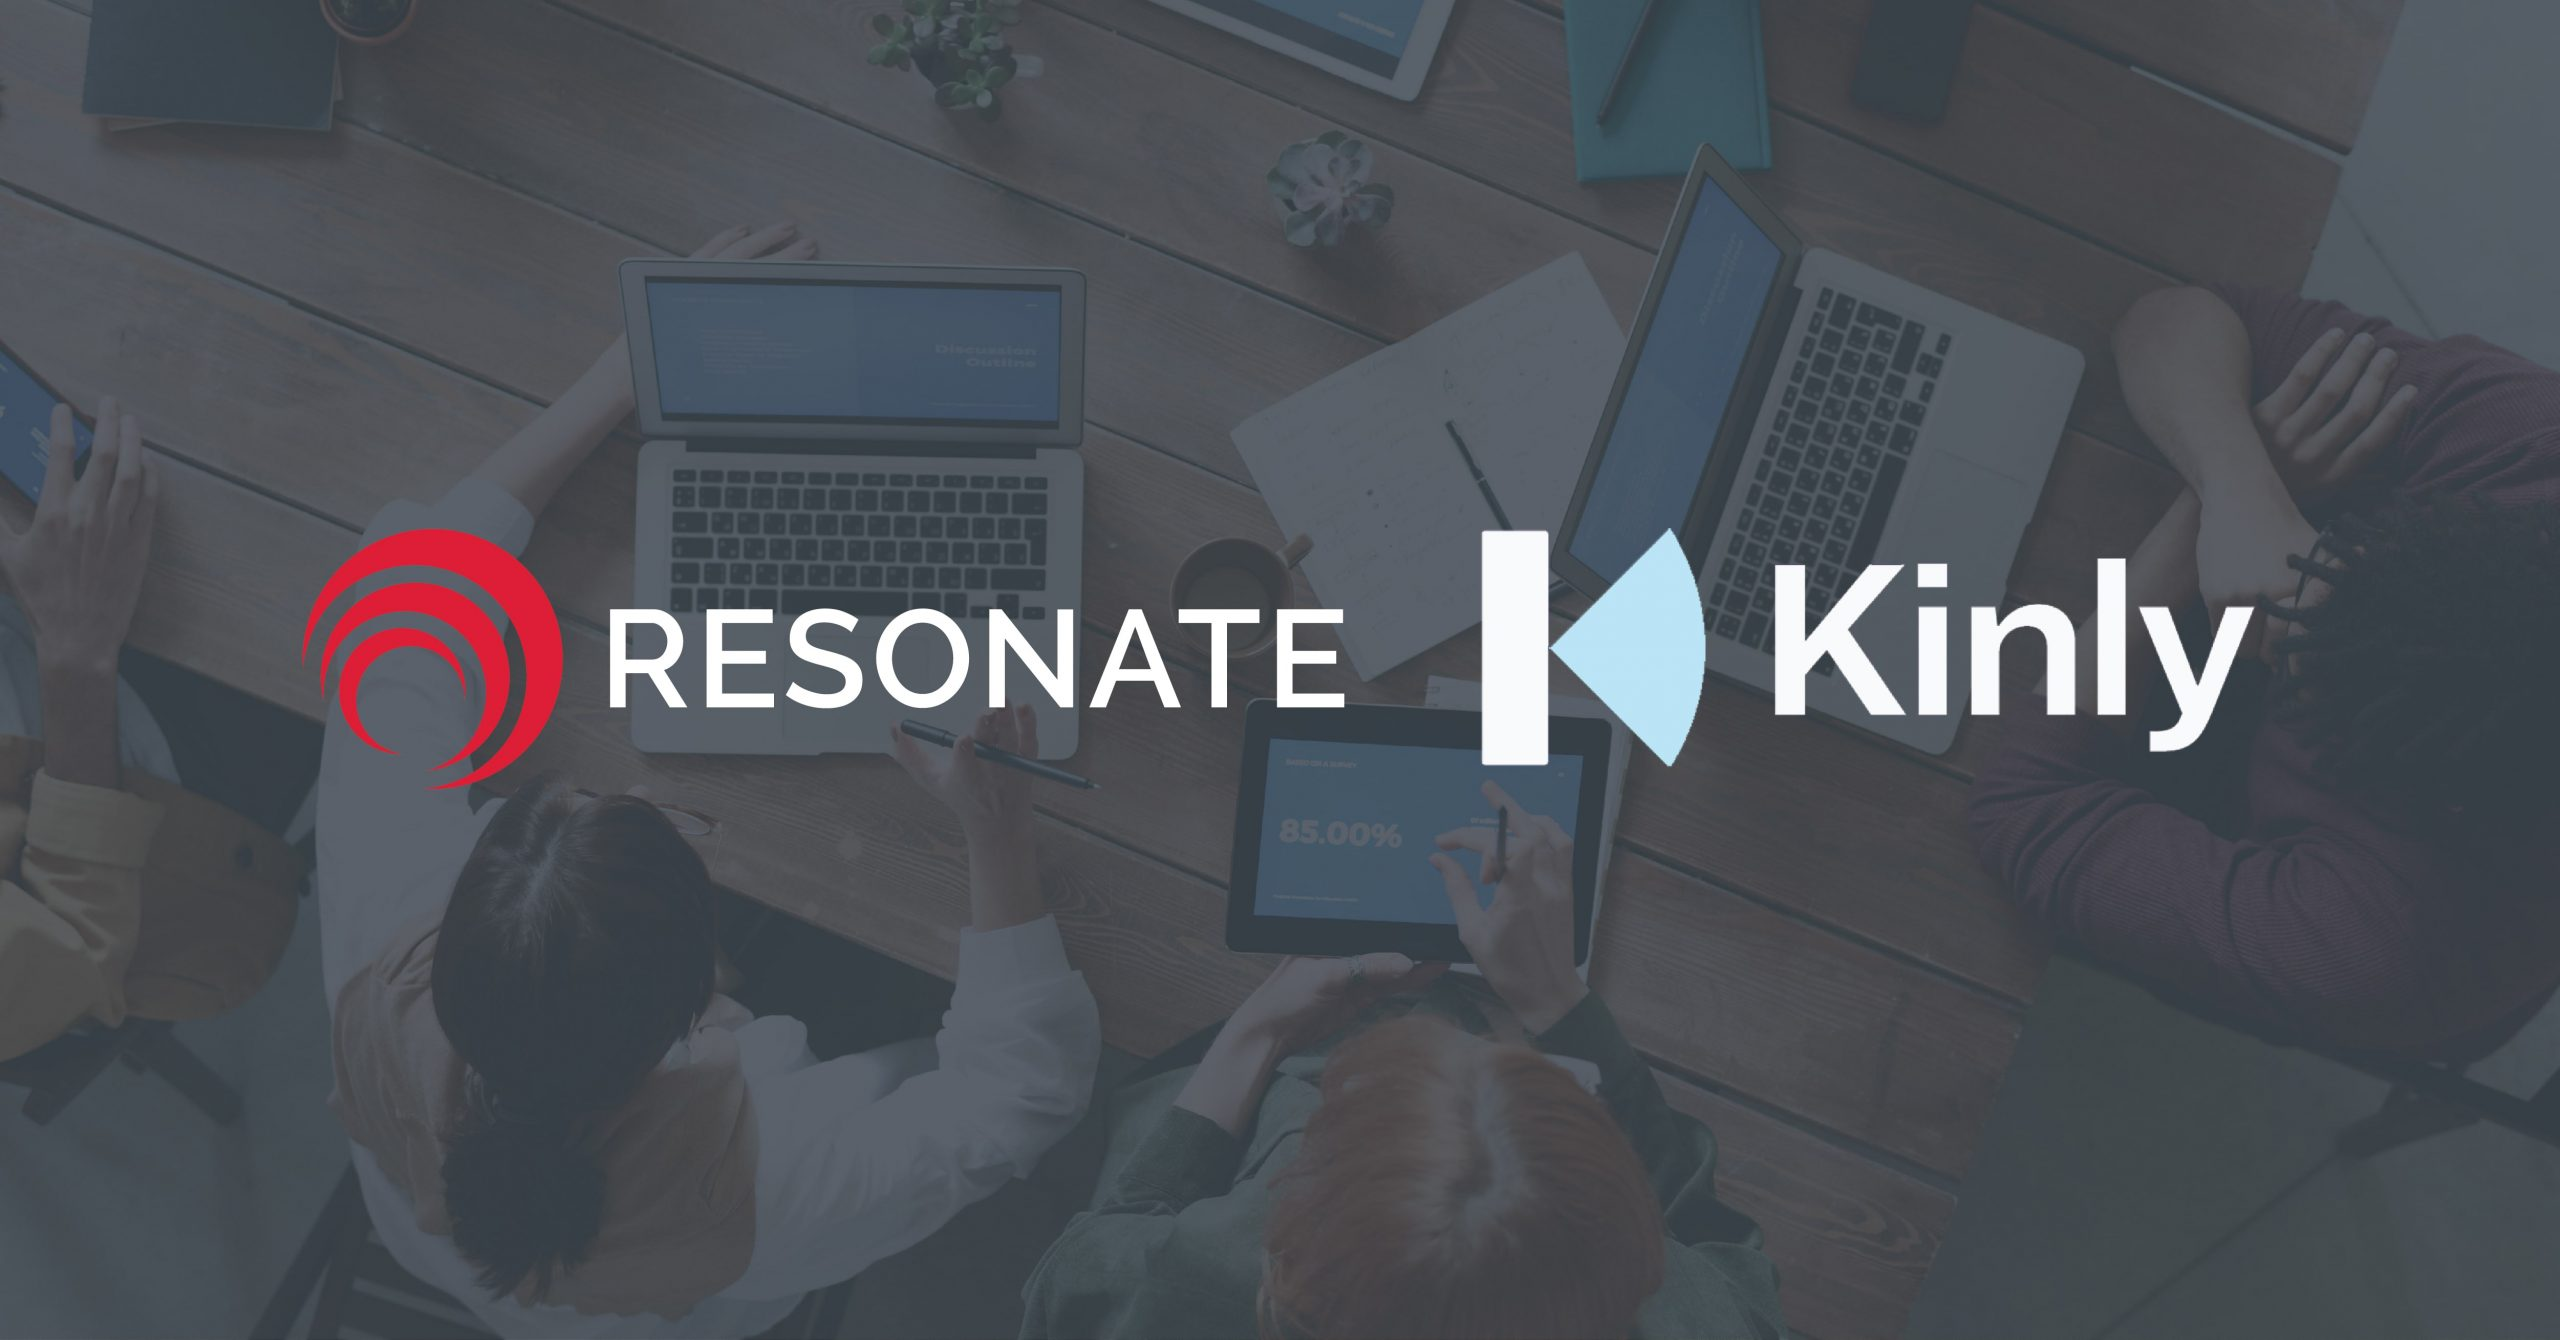 resonate kinly